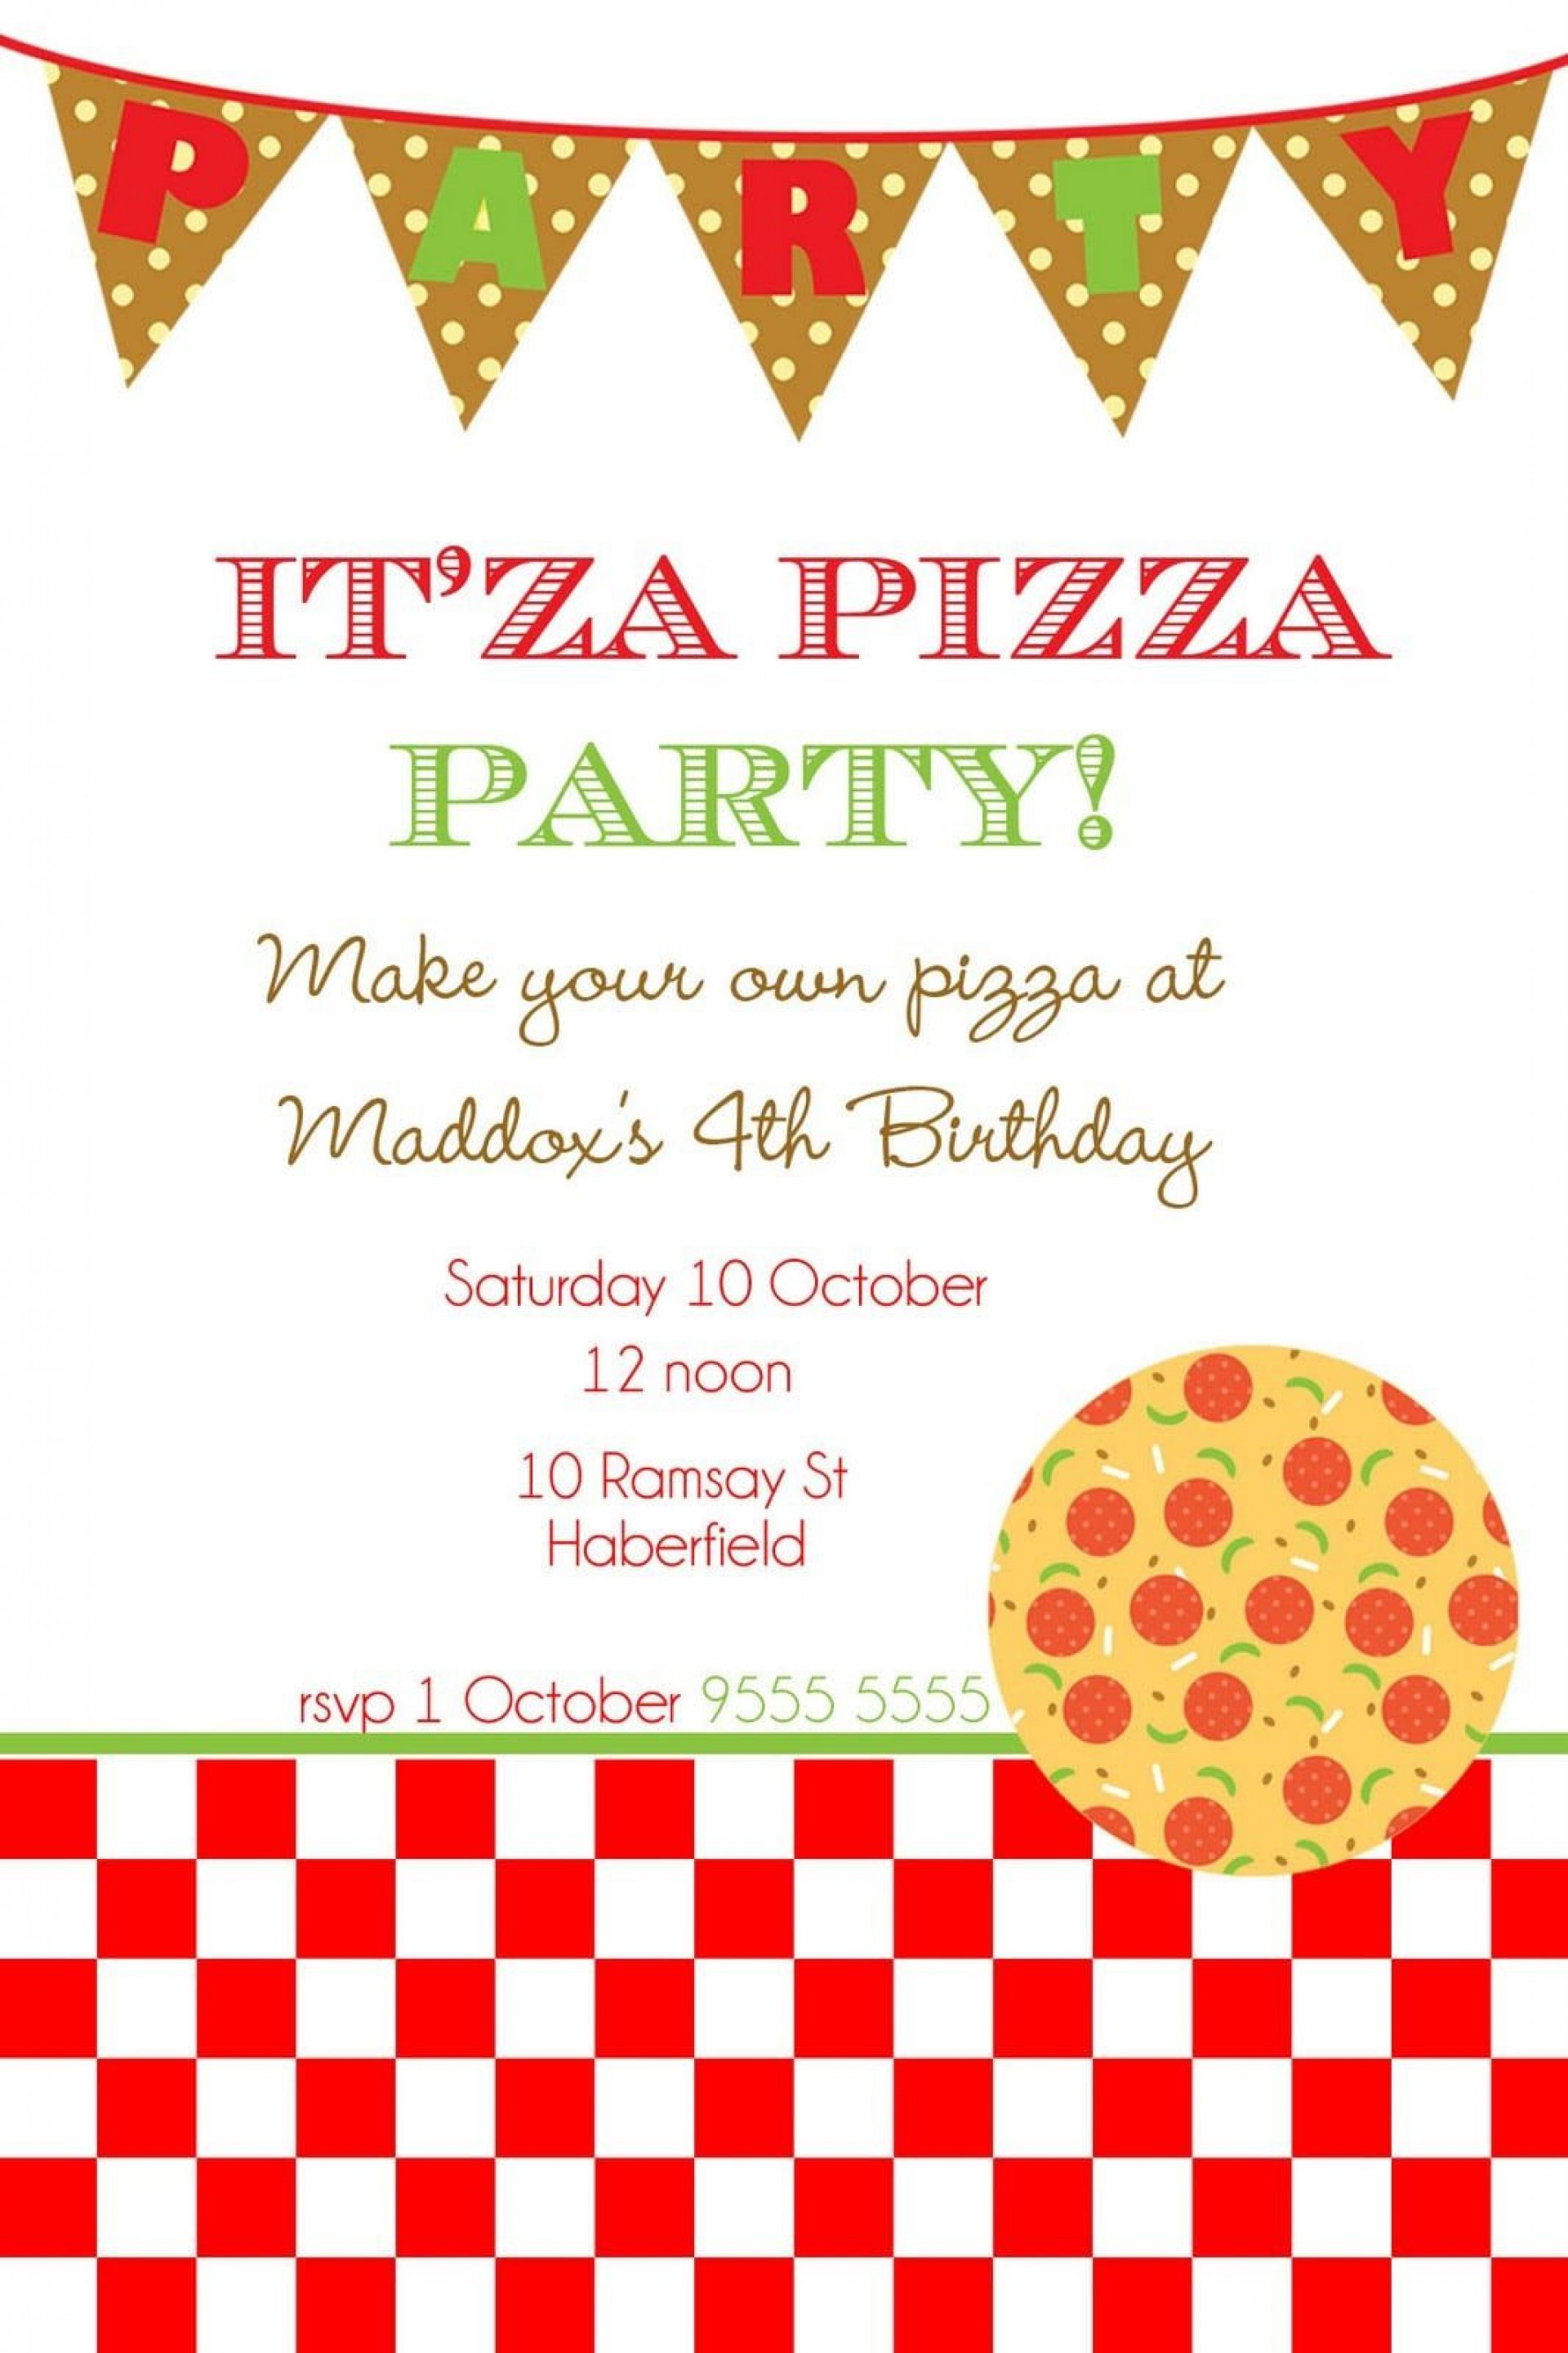 006 Awesome Pizza Party Invitation Template Free High Resolution  Printable1920